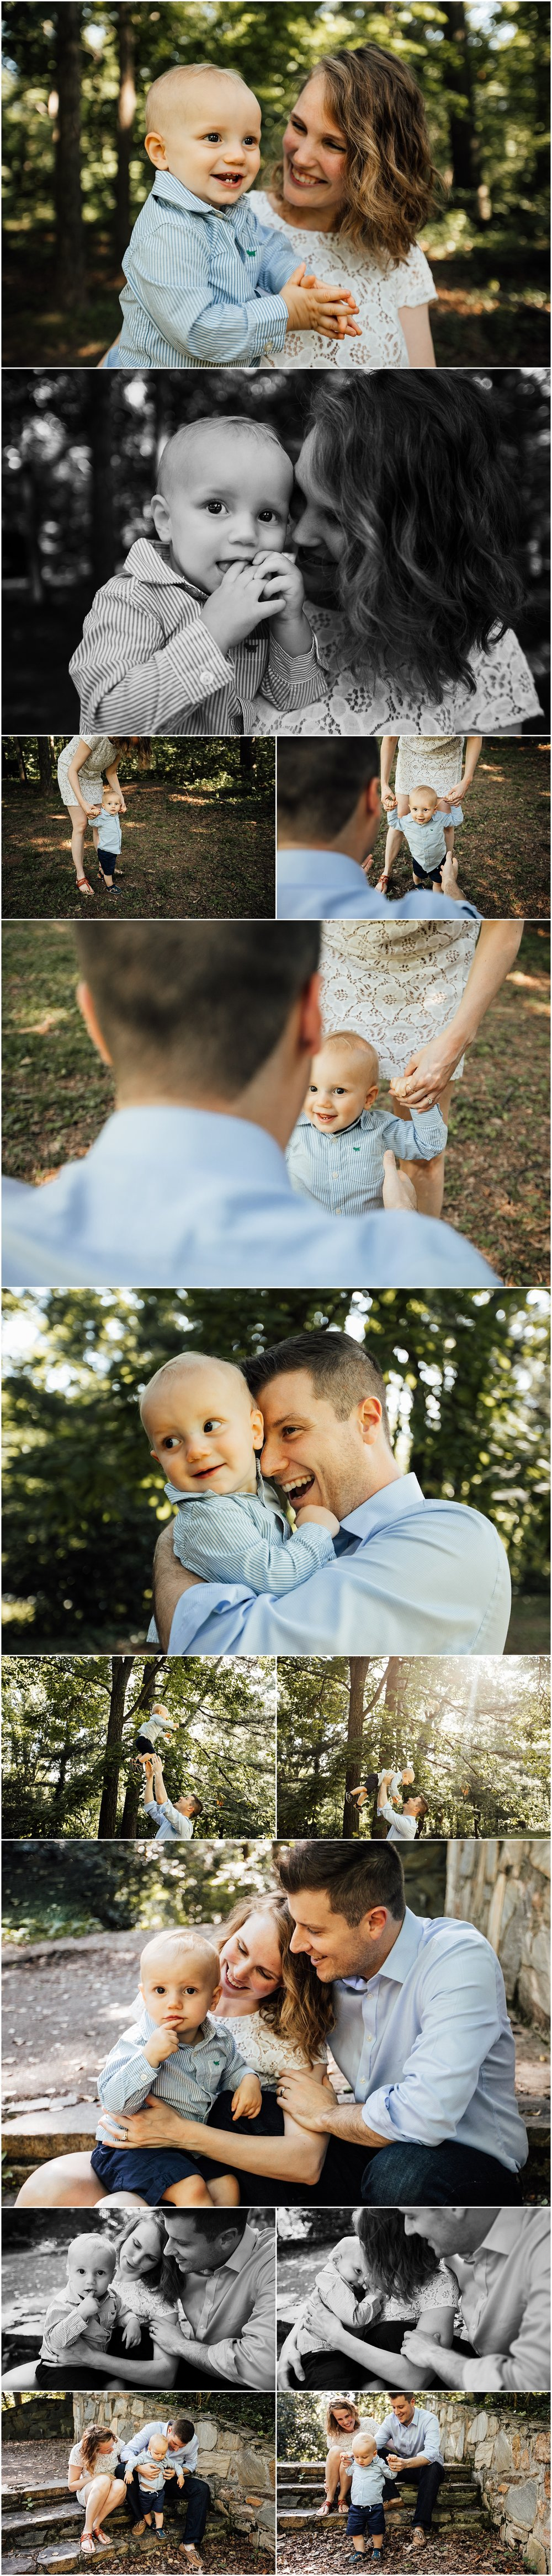 Family session by Madison Alabama family photographer Rachel K Photo